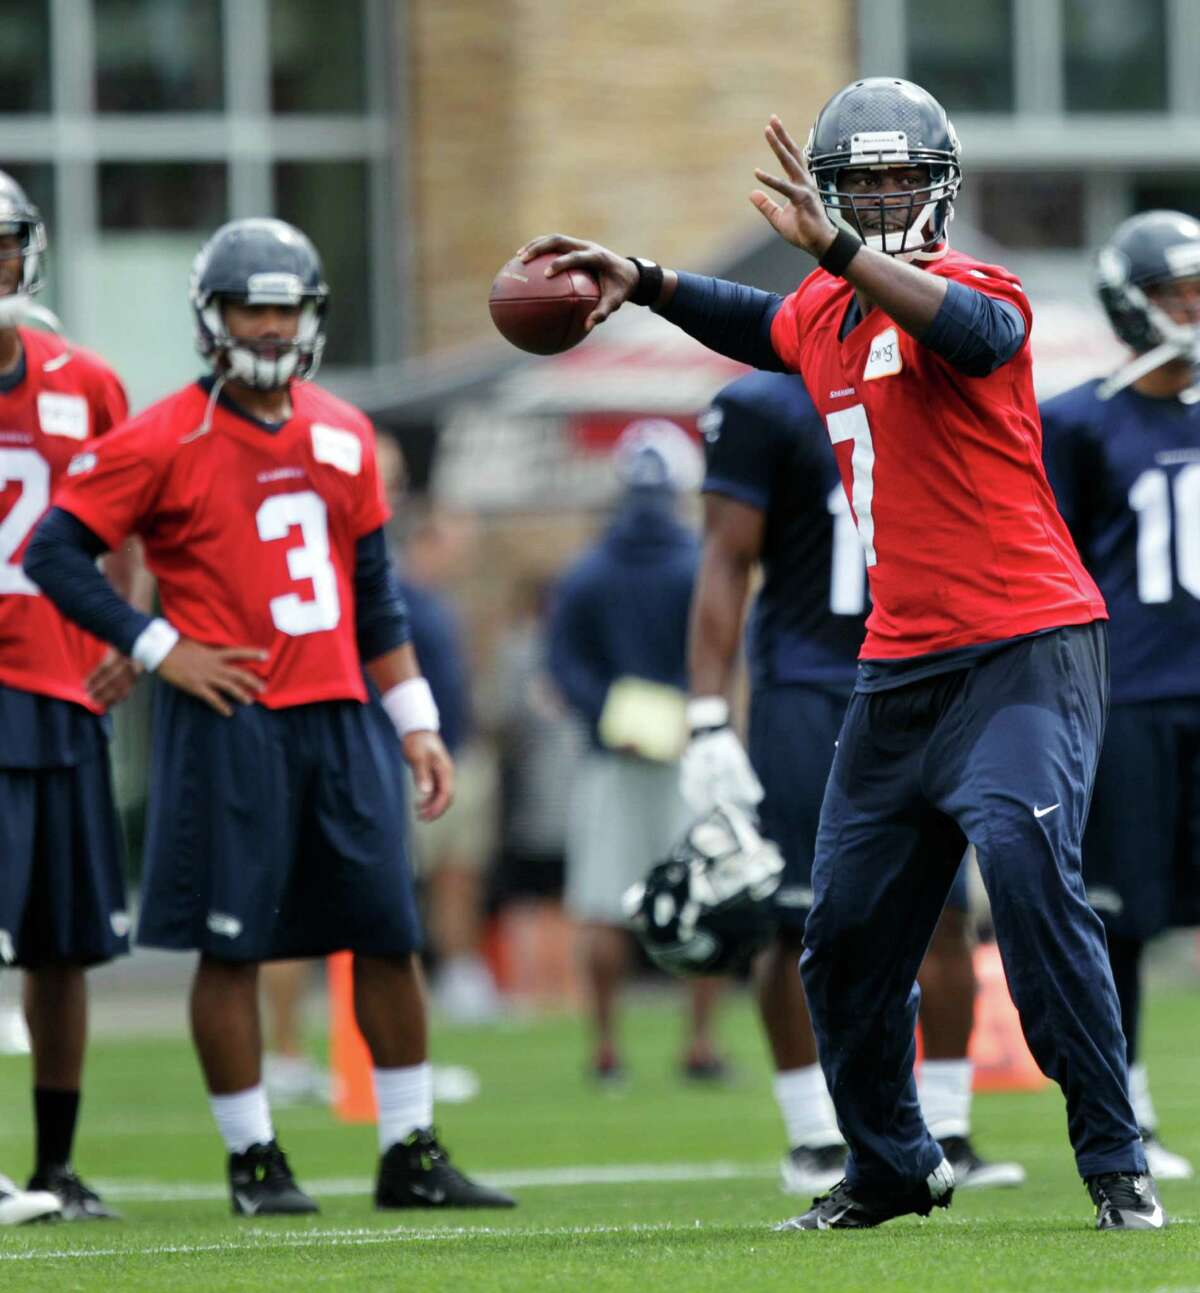 Seahawks quarterback Russell Wilson, (3) looks on as quarterback Tavaris Jackson, right, passes the ball.